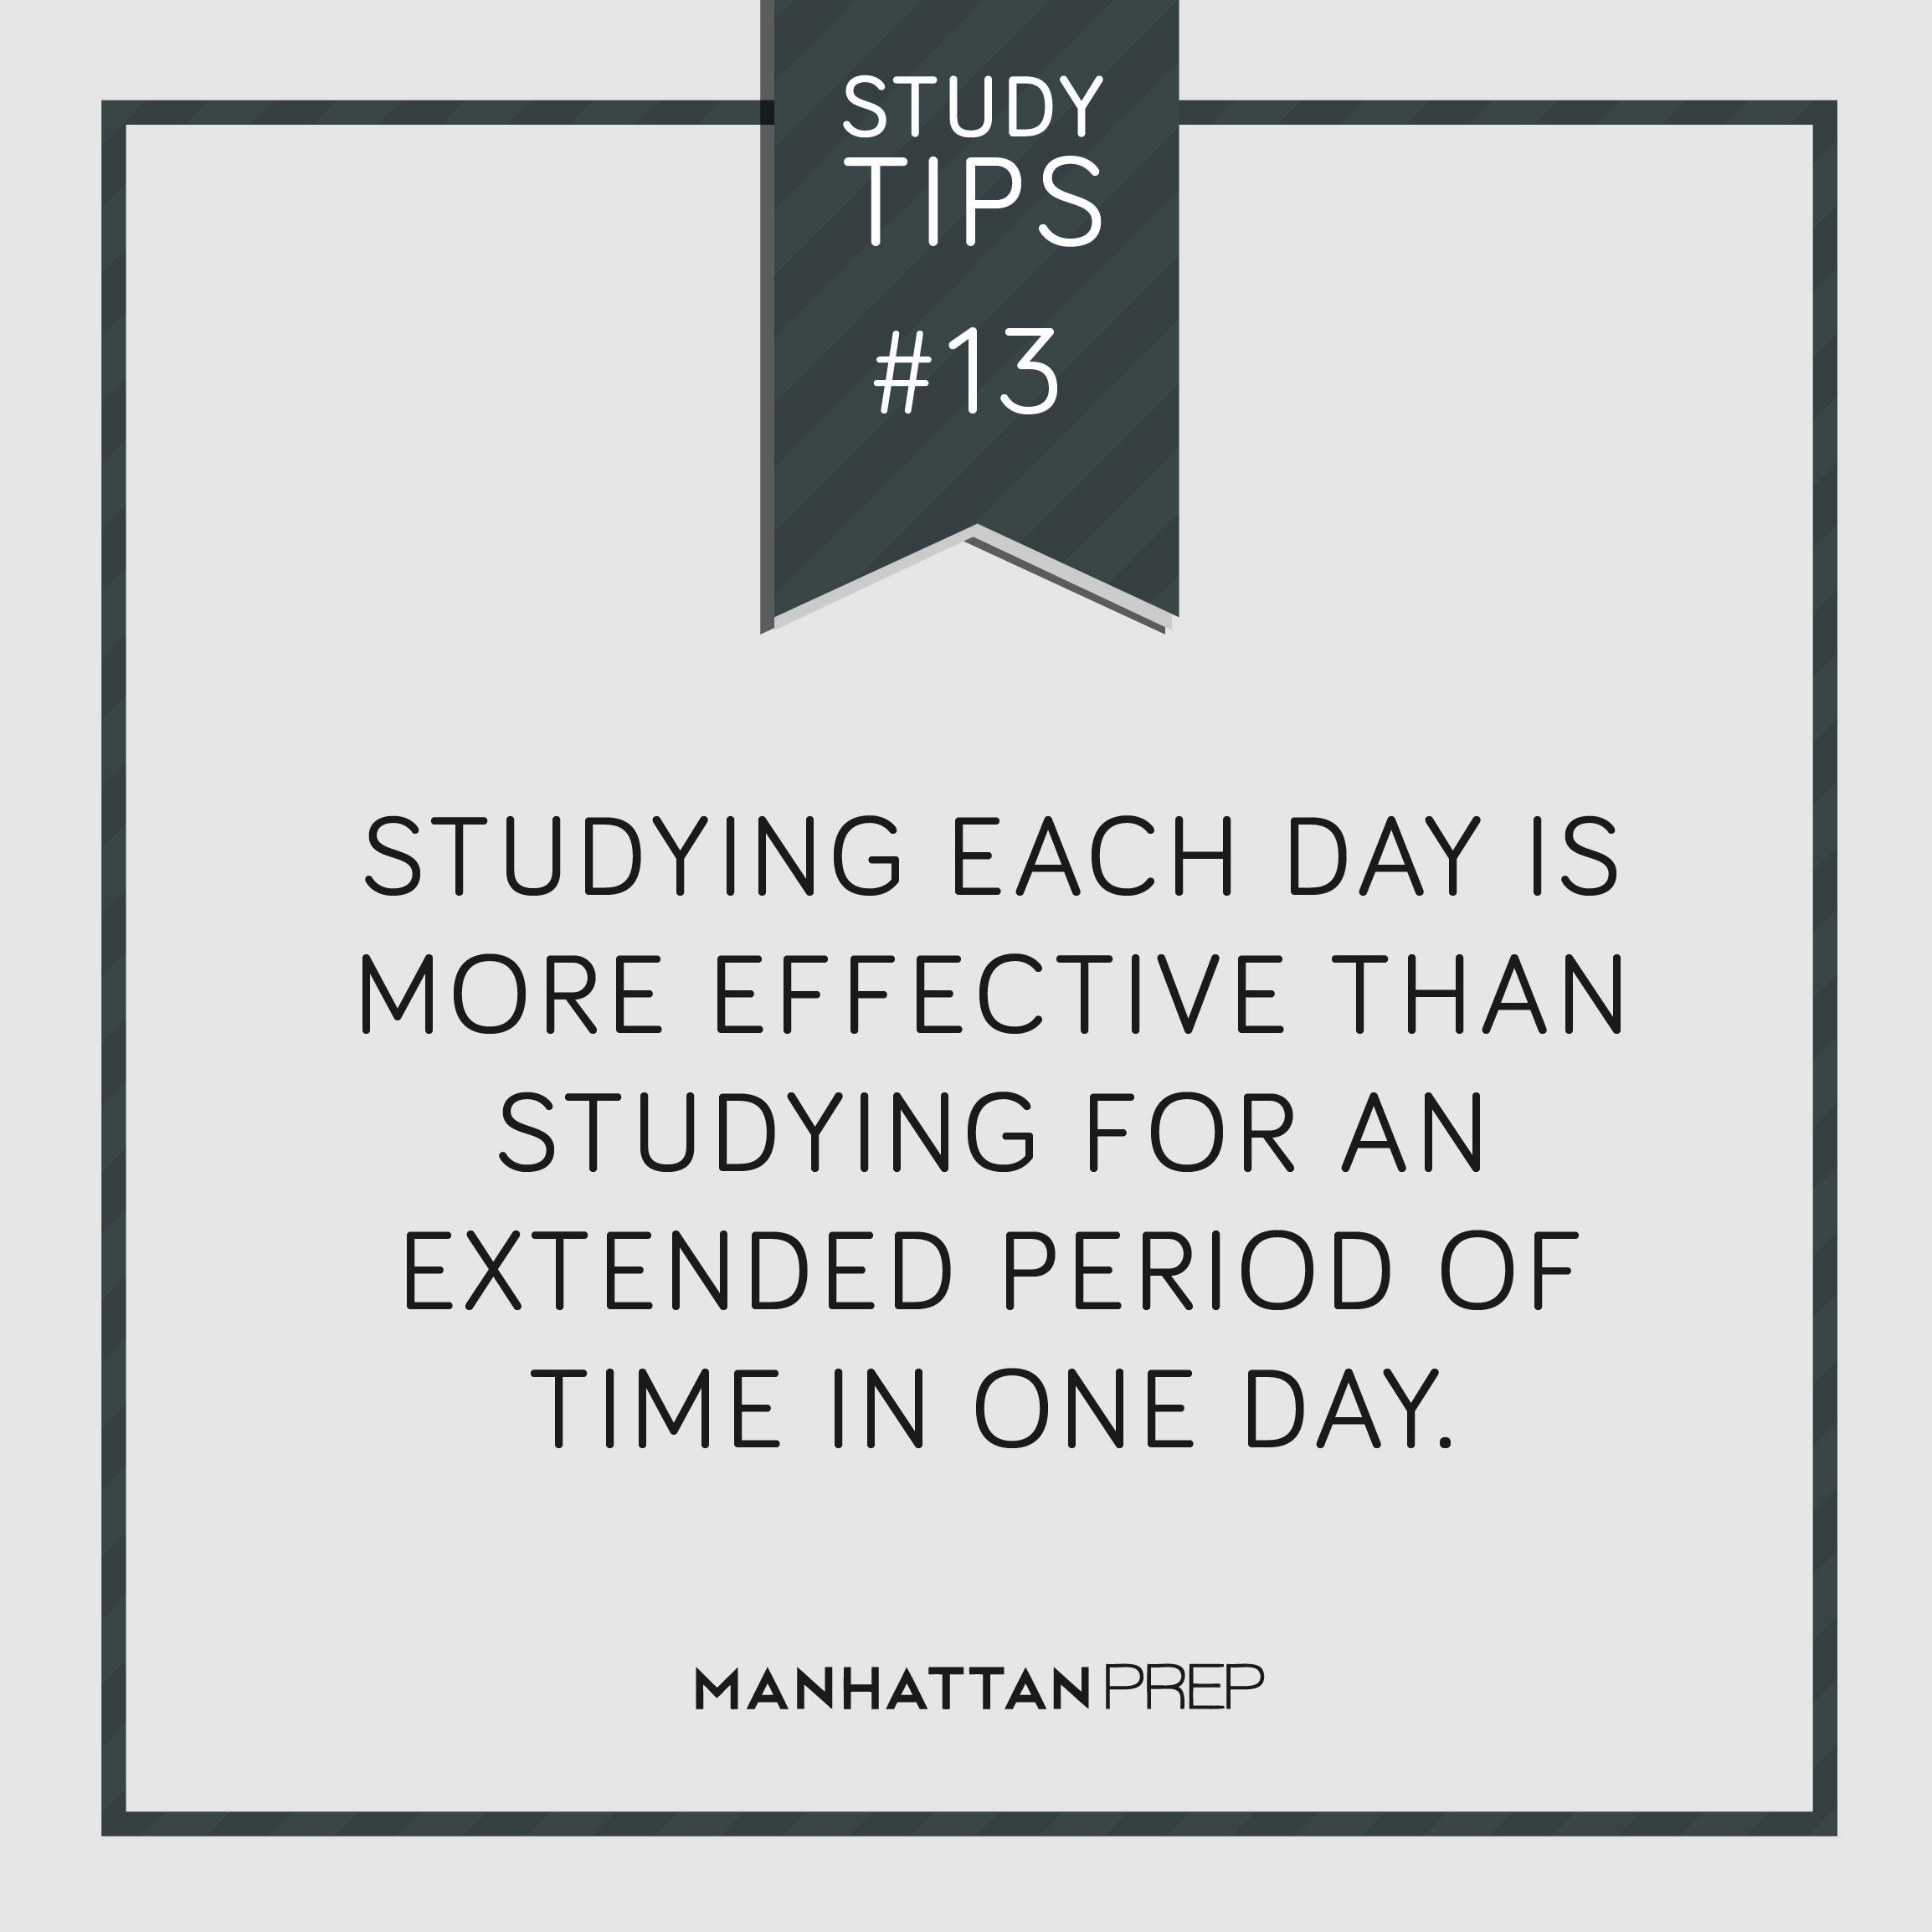 Studying each day is more effective than studying for an